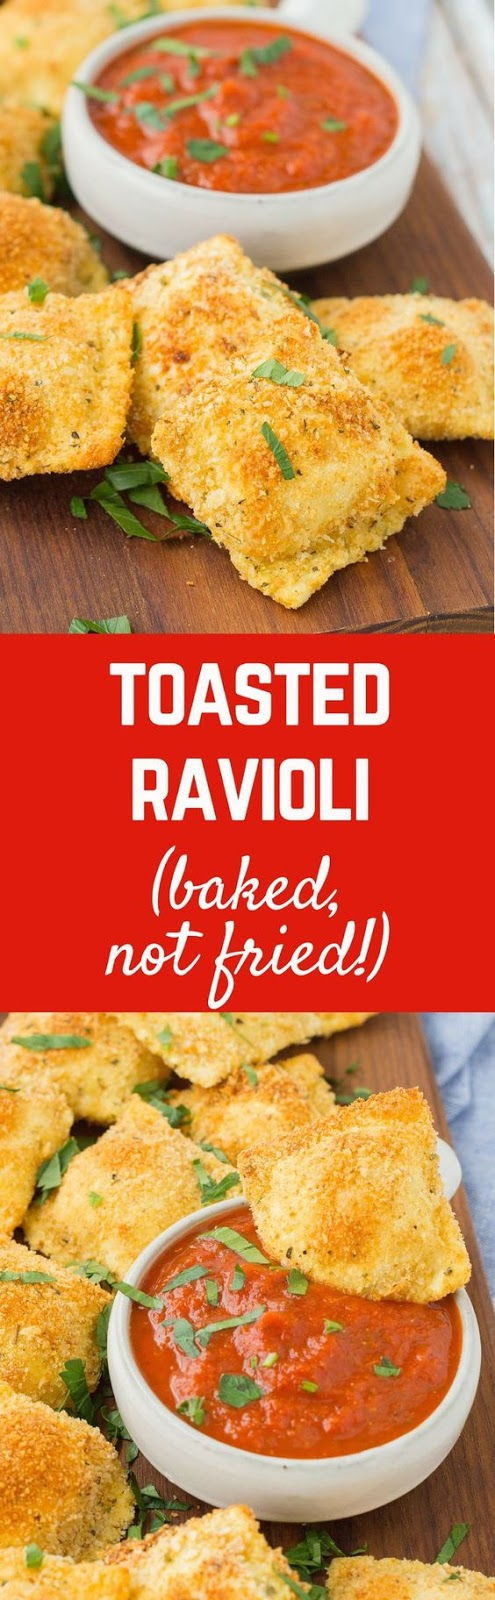 TOASTED CHEESE RAVIOLI WITH PIZZA SAUCE